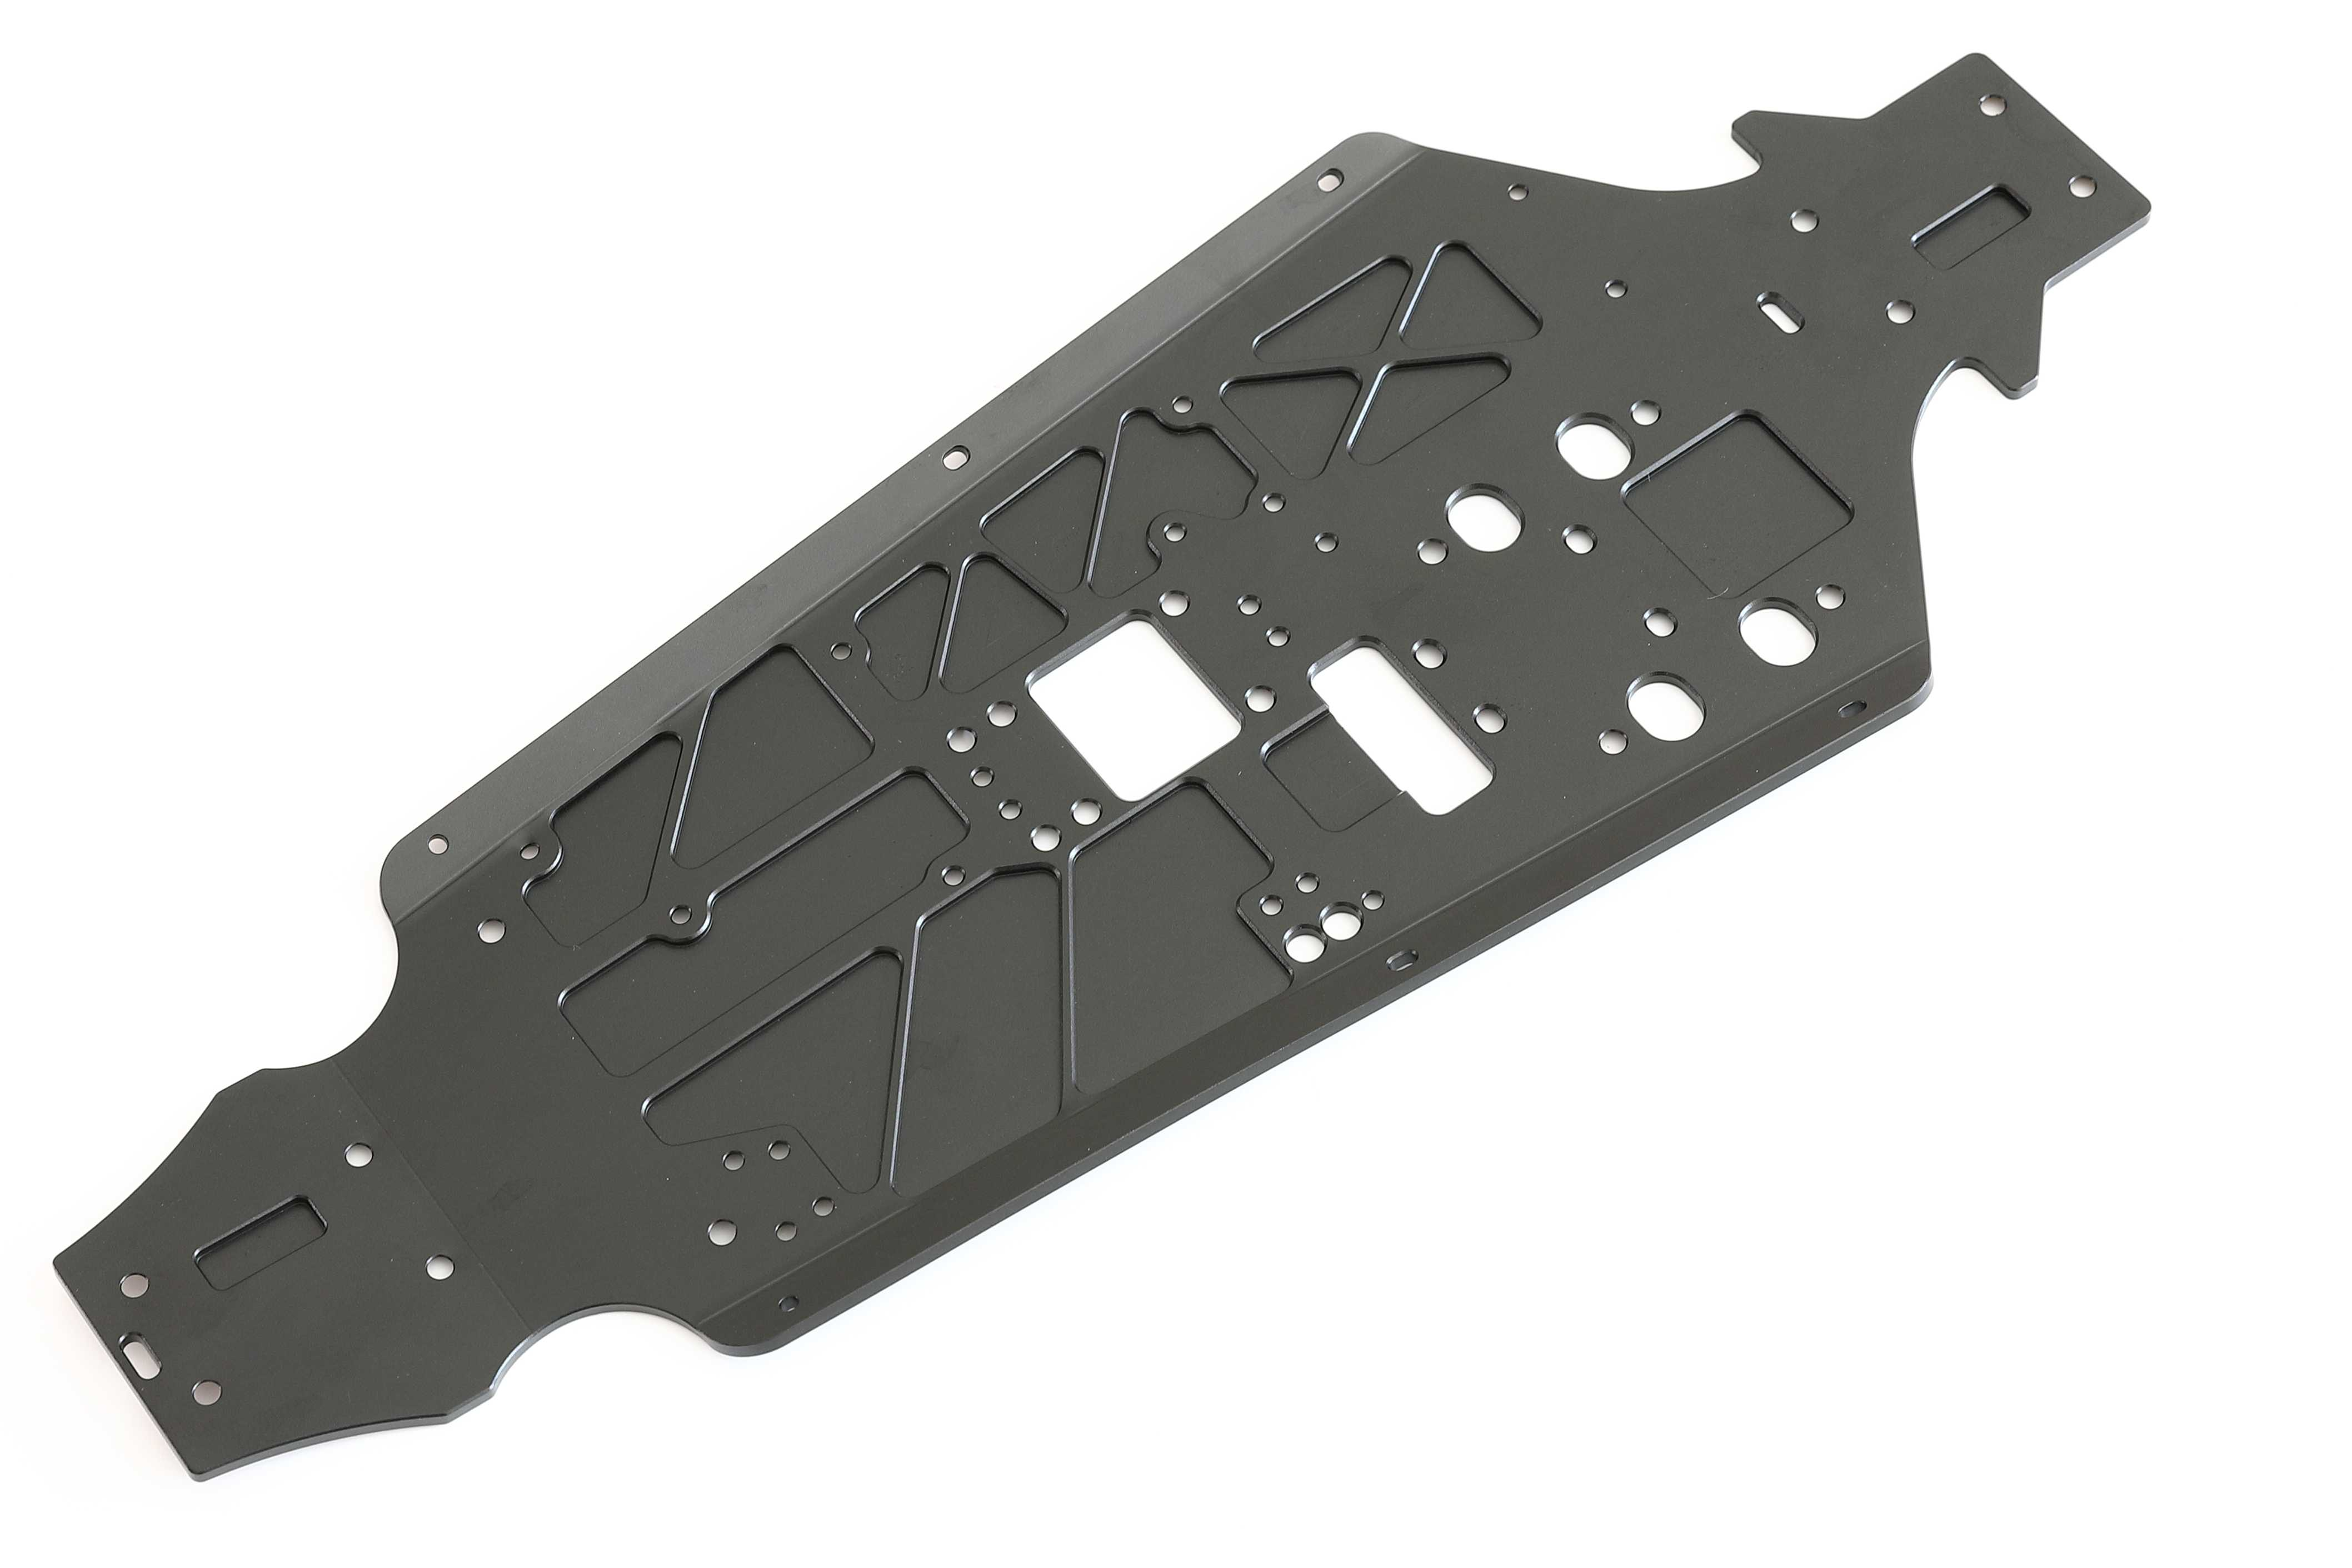 Aluminum Alloy Front//Rear Hydraulic Plate for Kyosho Inferno MP7.5 GT GT2 RC Car